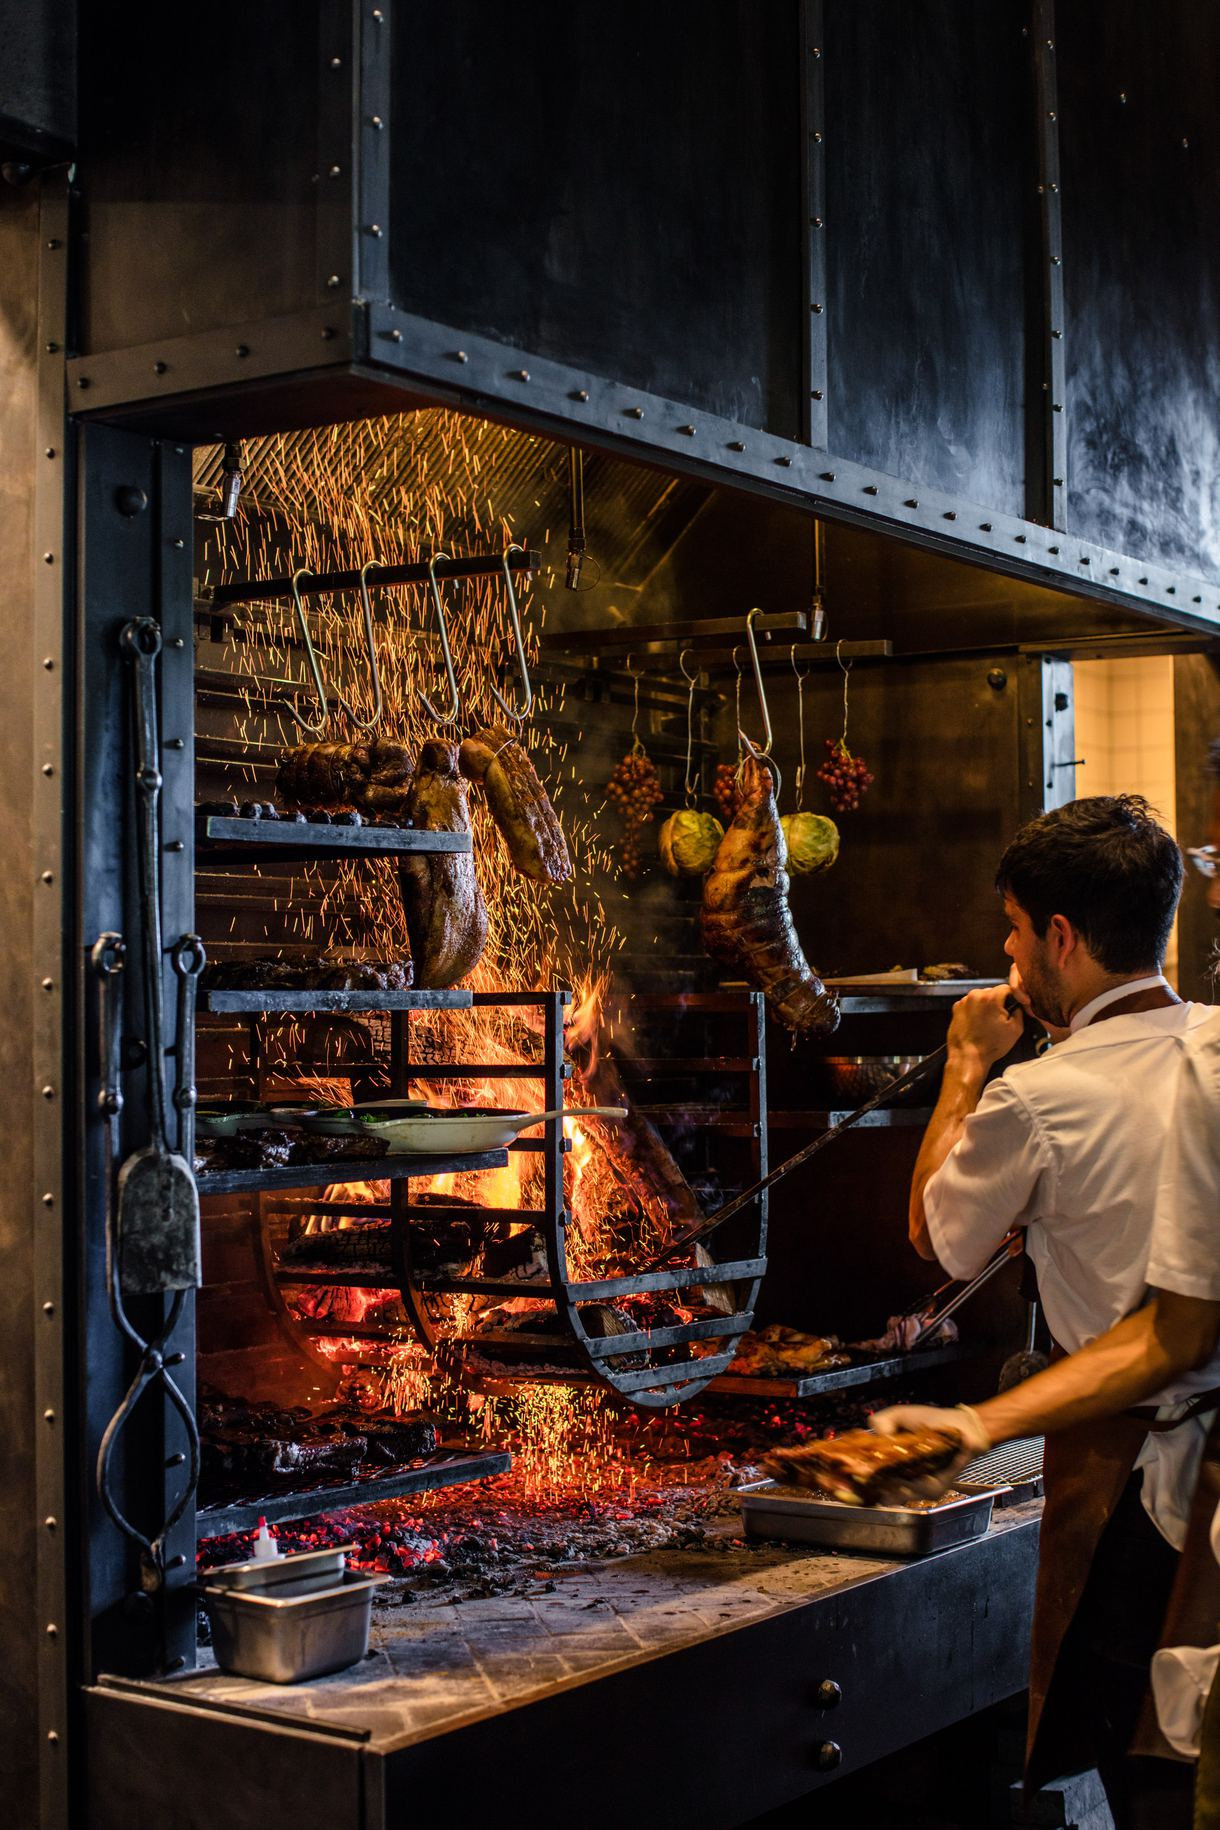 Locally sourced meats are roasted over an open hearth.